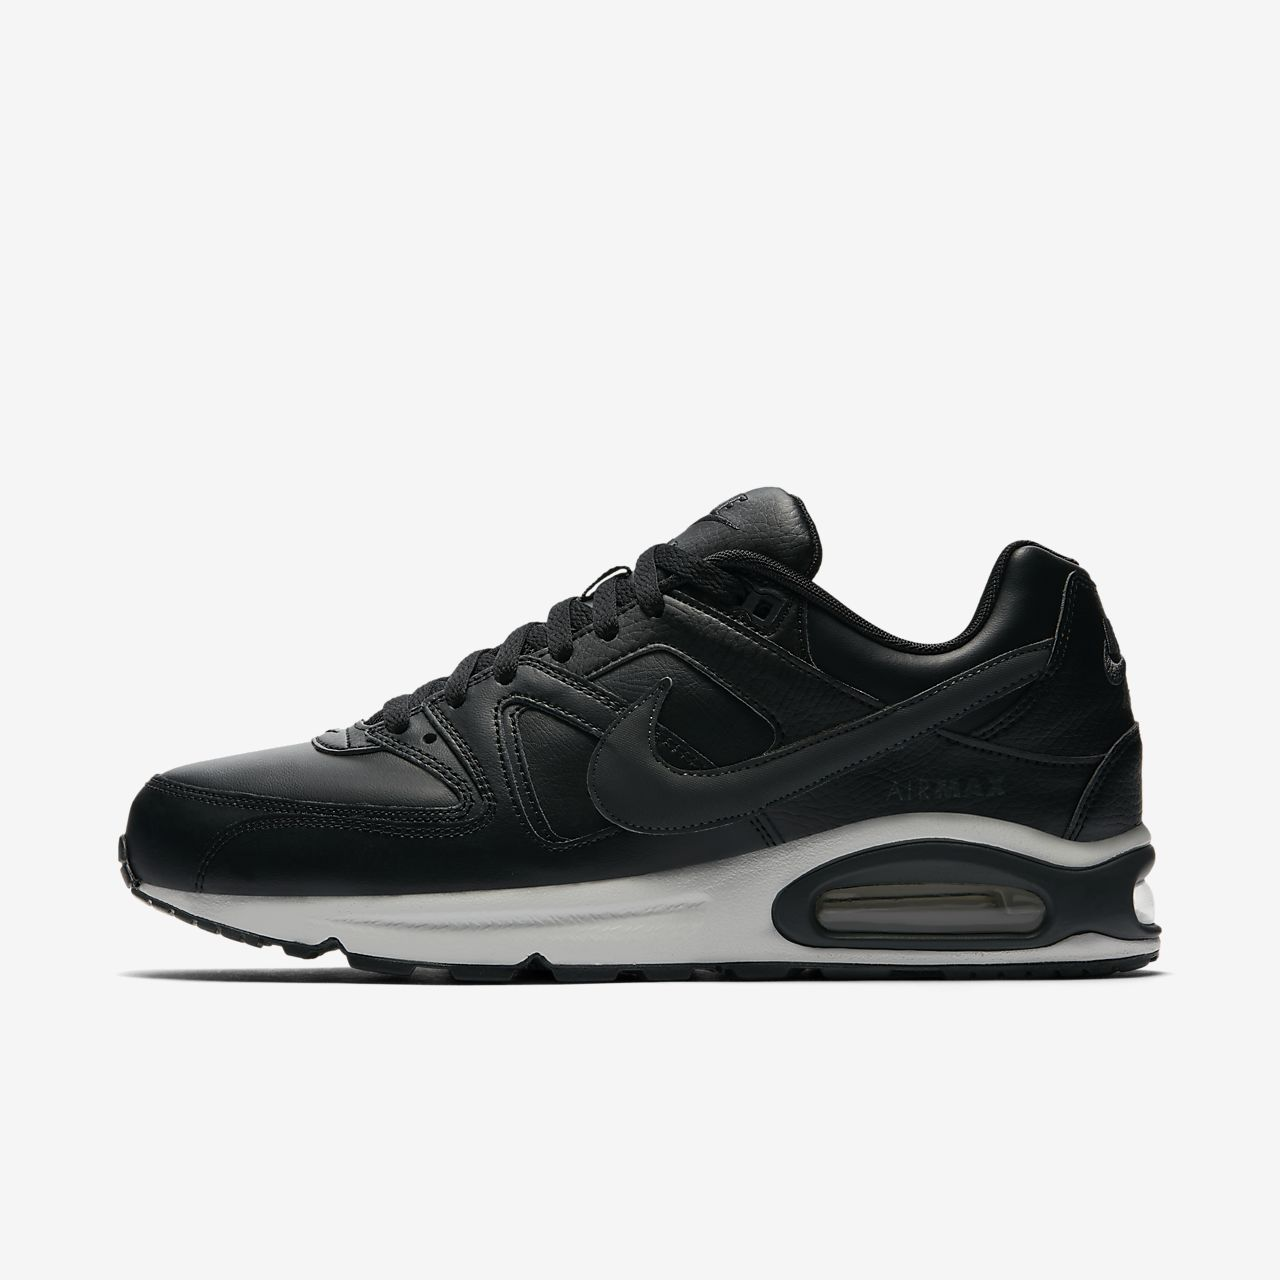 Nike Air Max IVO Men's Shoe